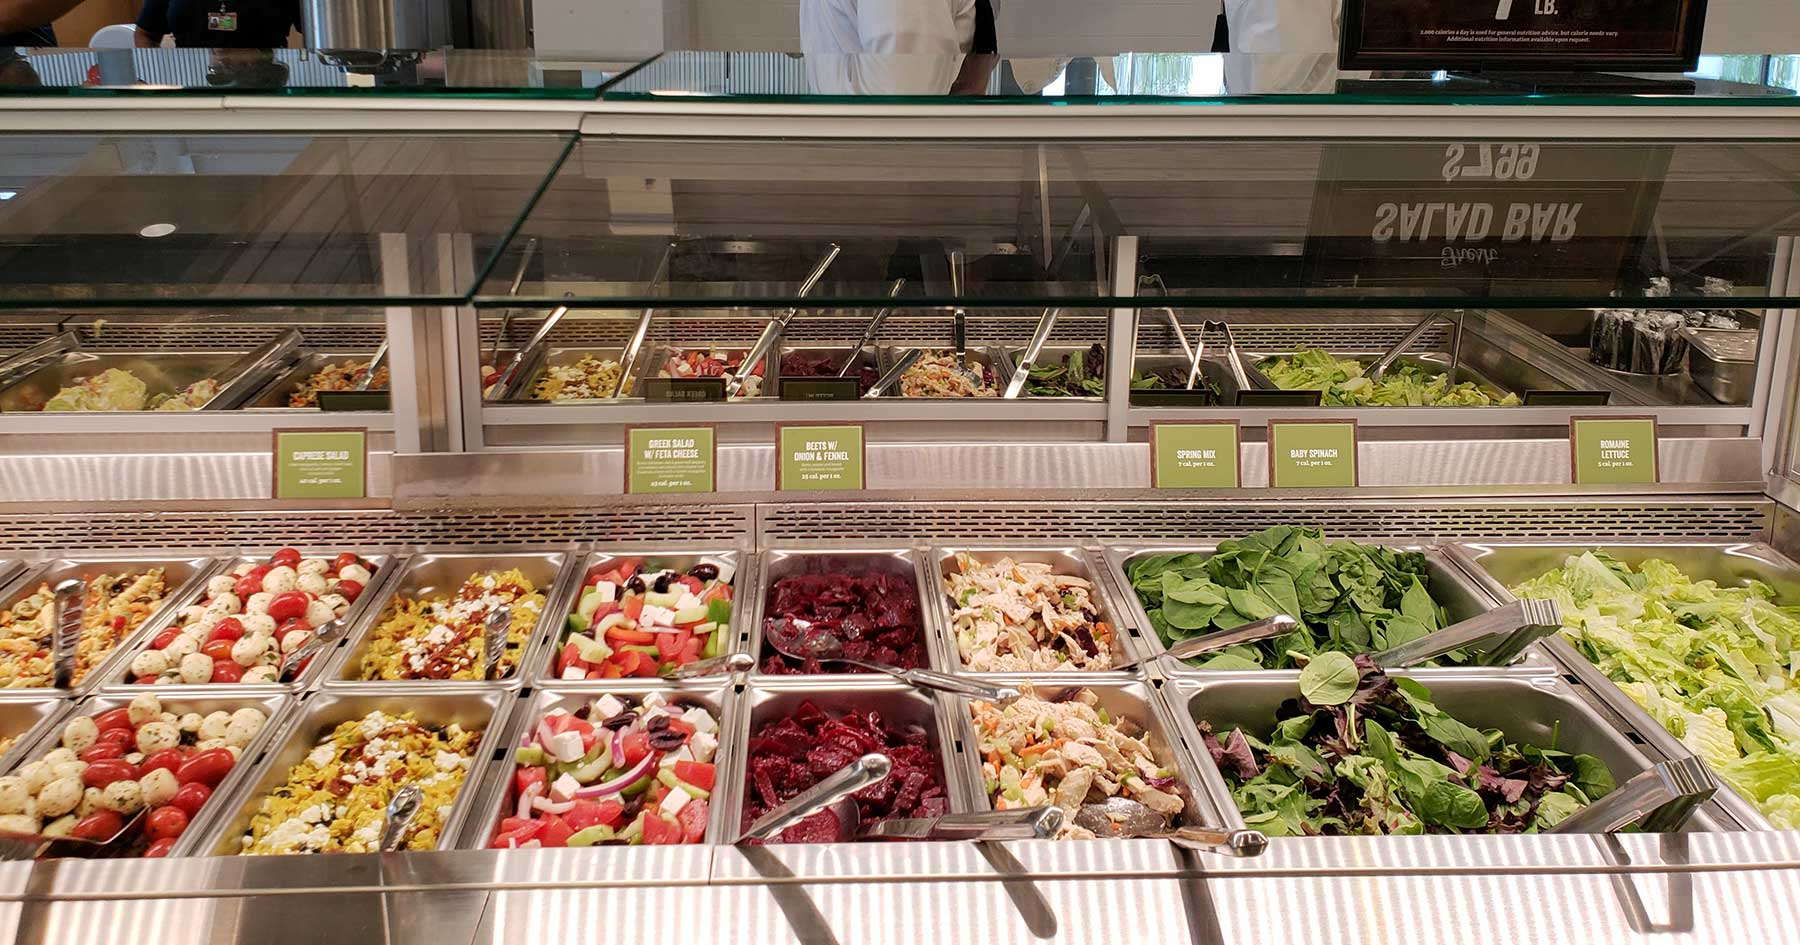 sprouts salad bar